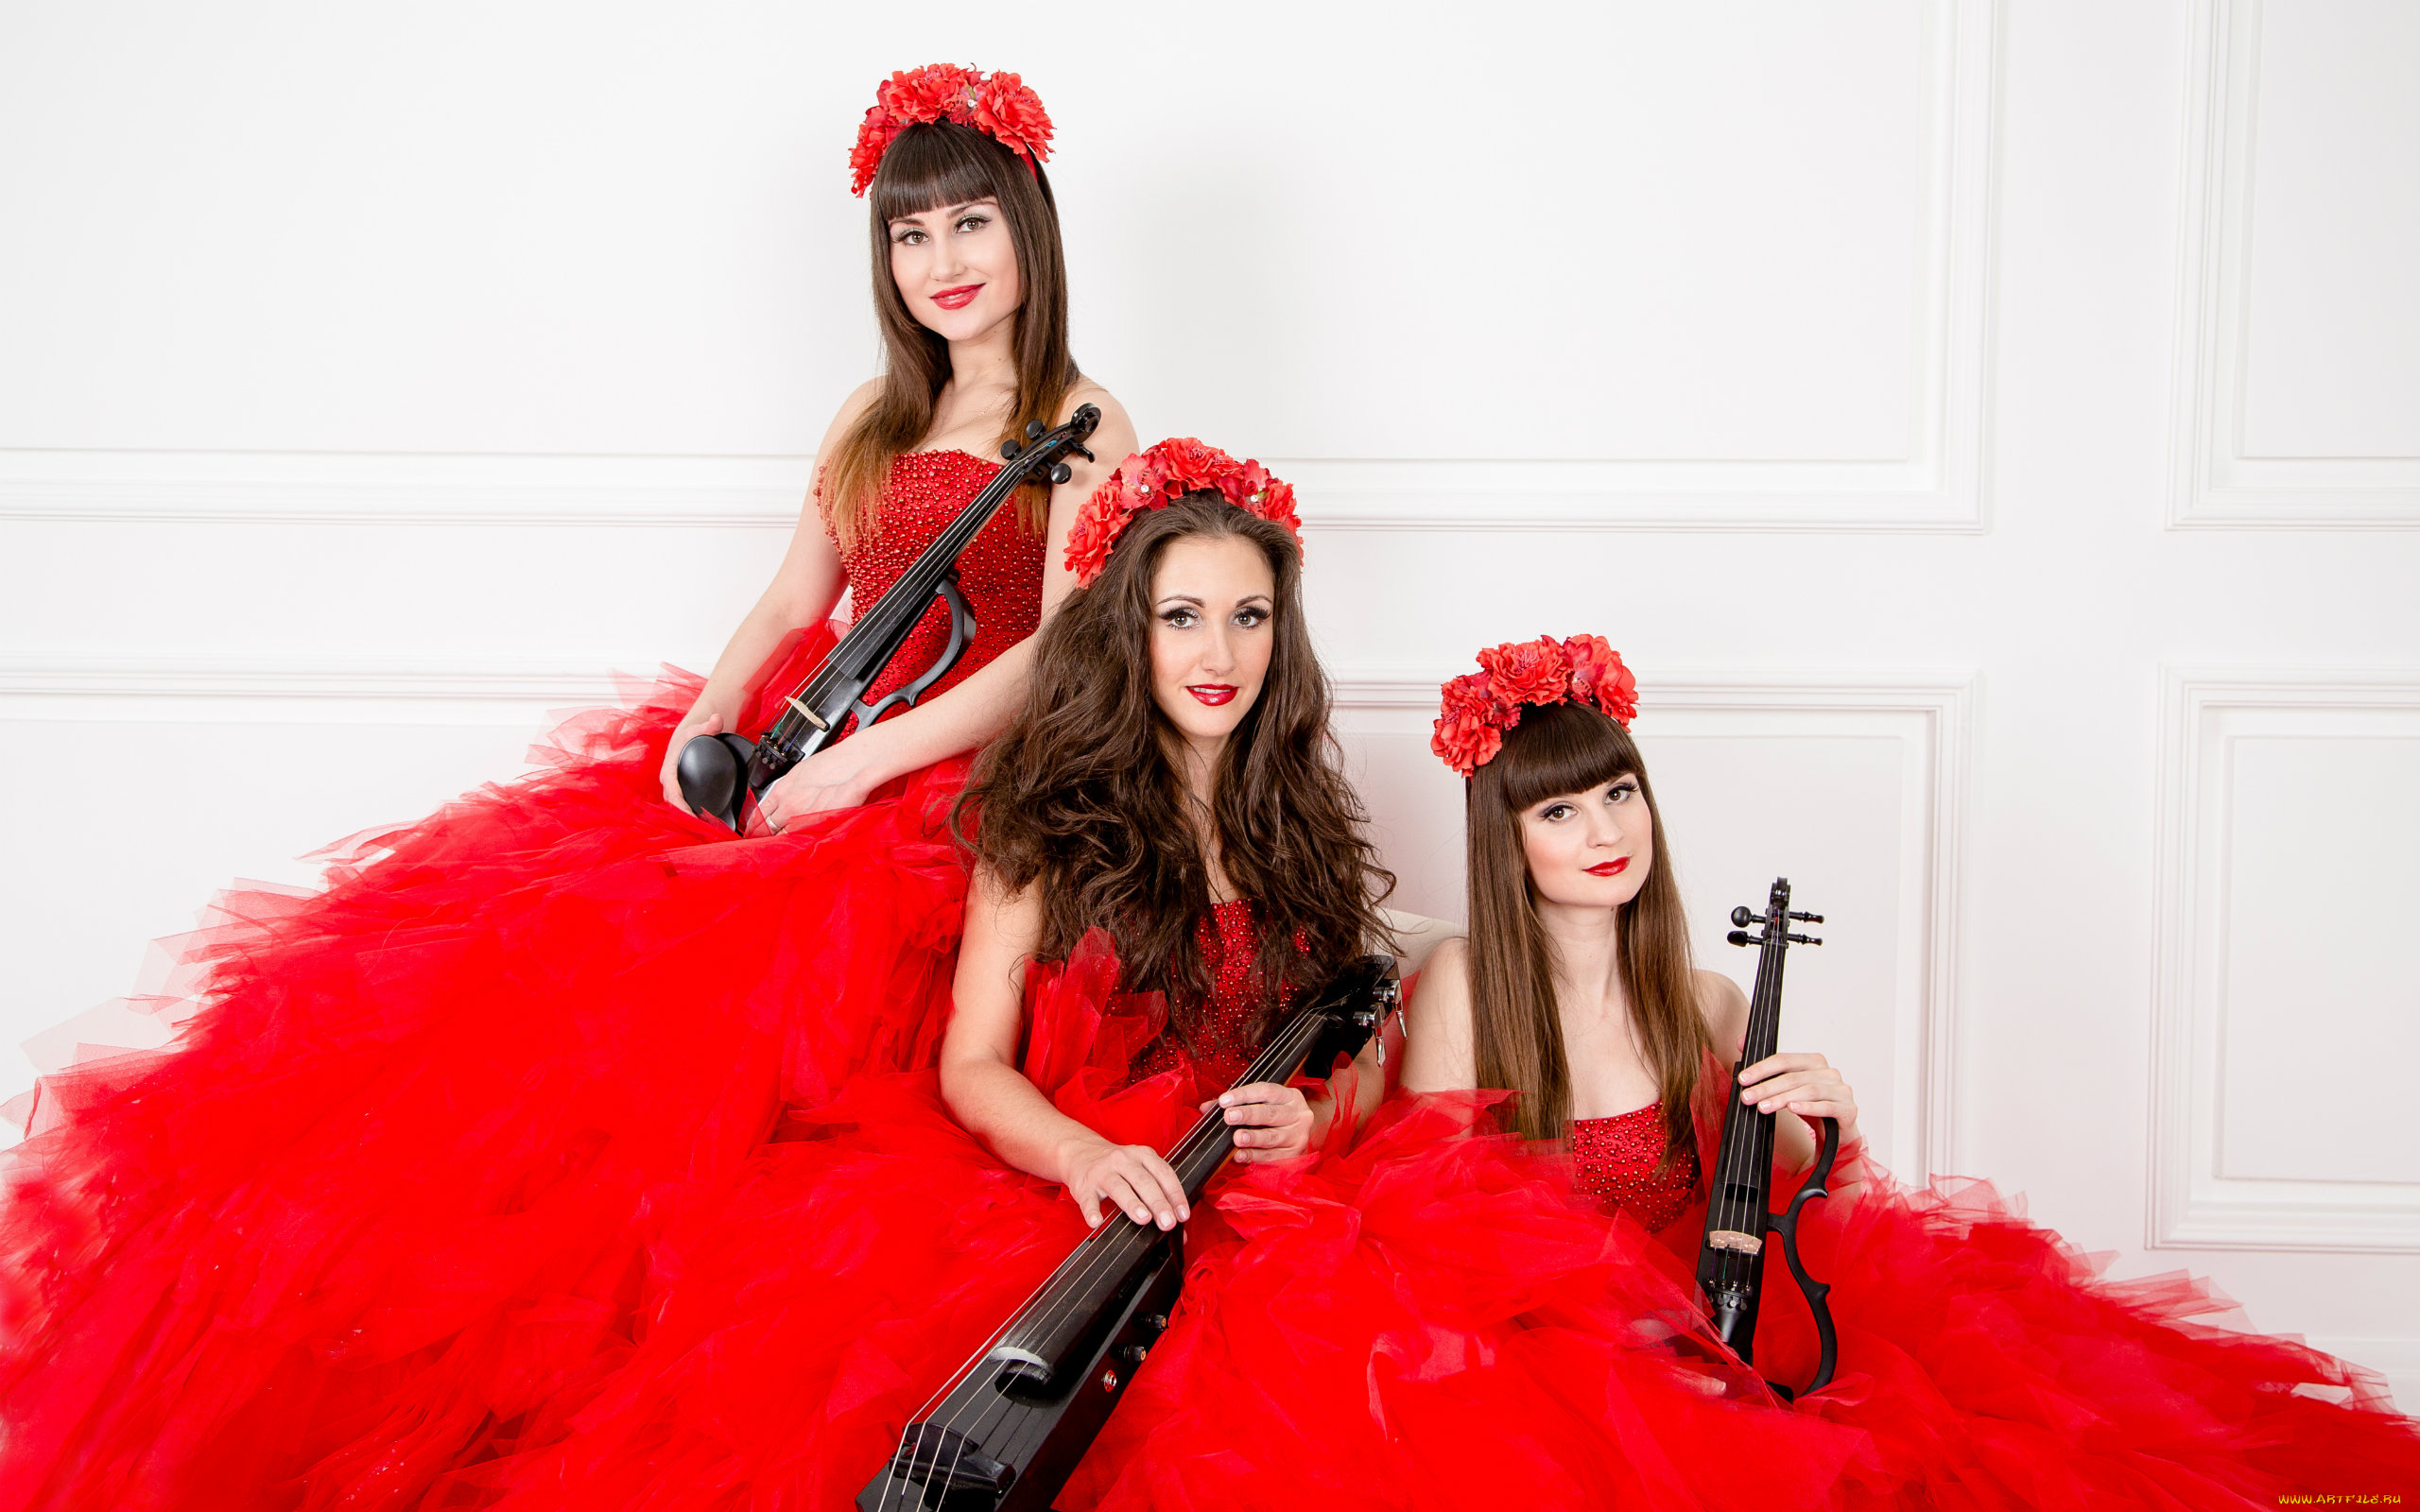 Скрипачка Violin Group DOLLS  № 1857099 загрузить